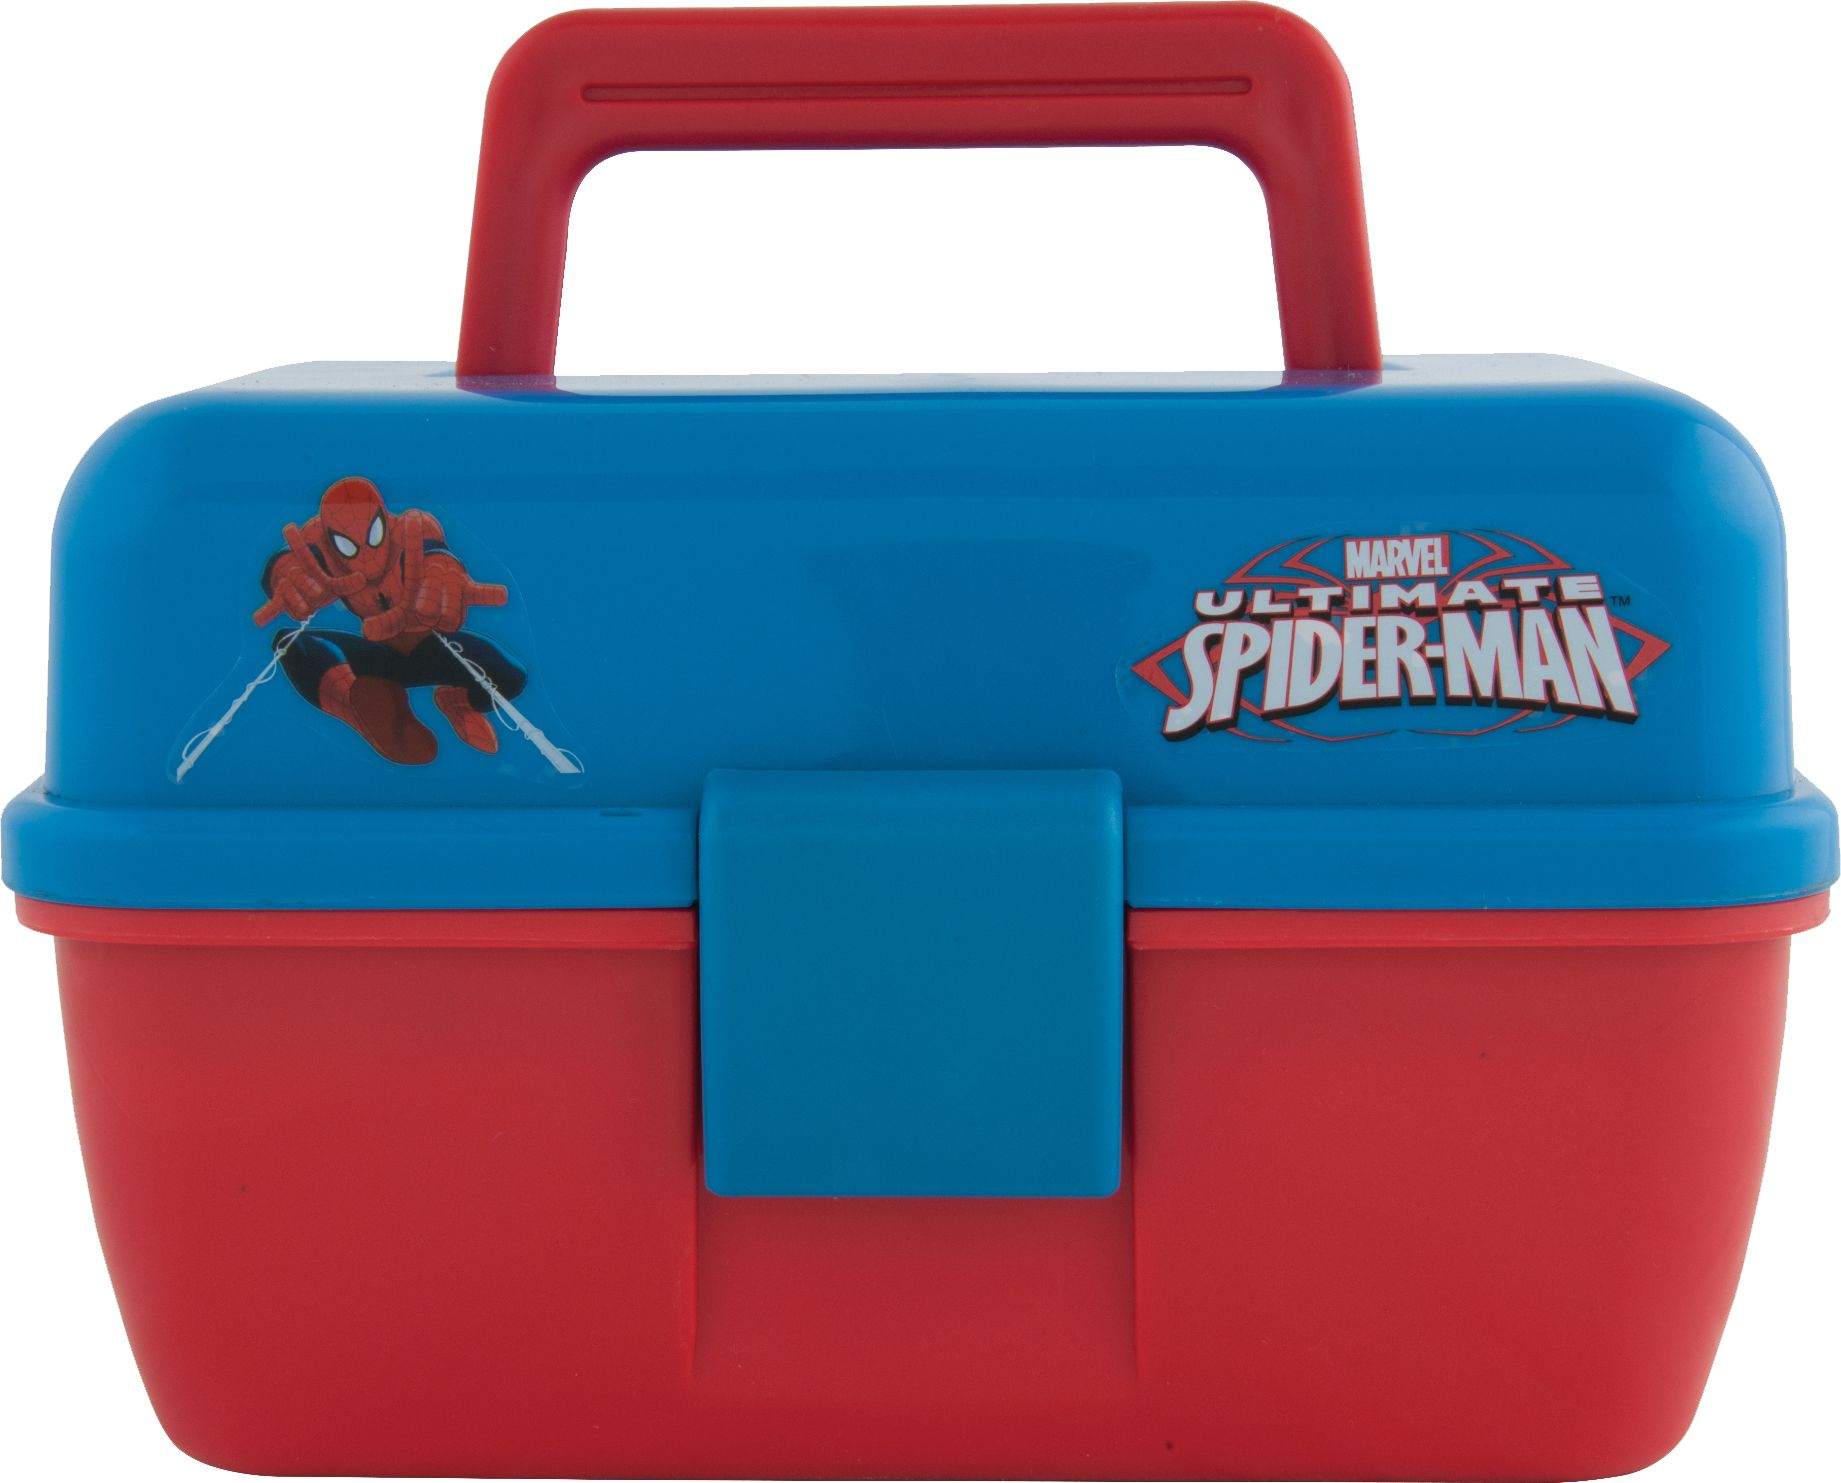 Shakespeare Pullout Spiderman Tackle Box, Kids